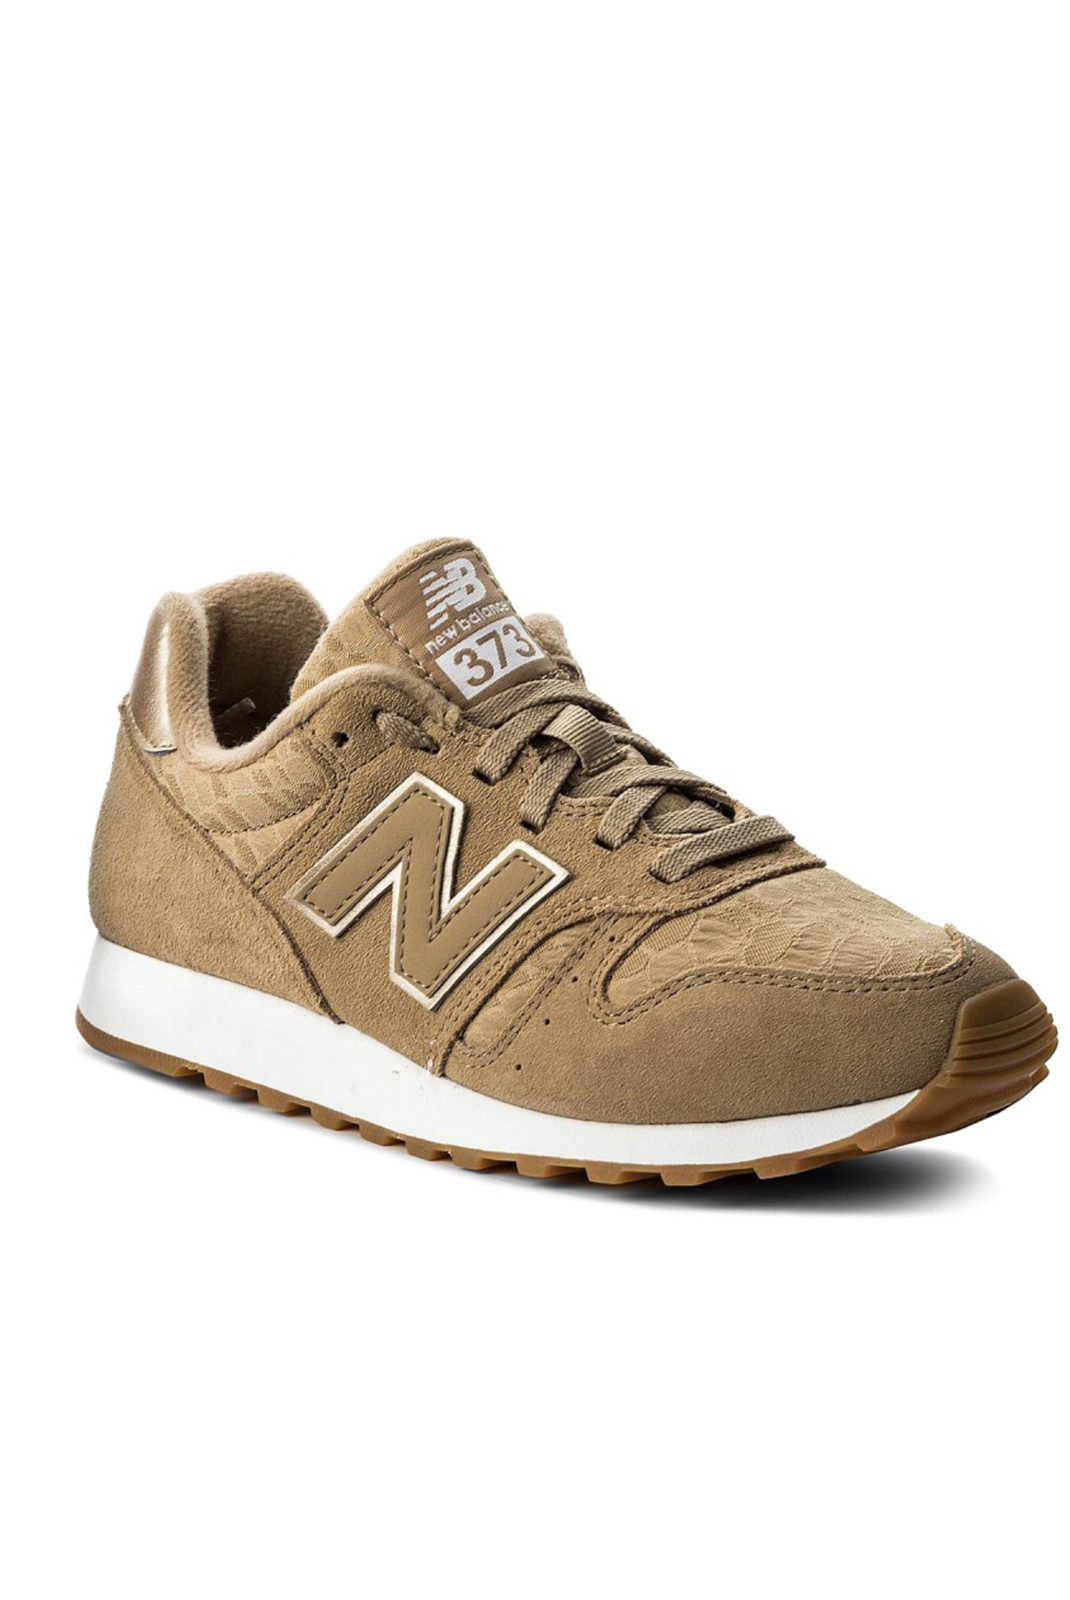 basket new balance or